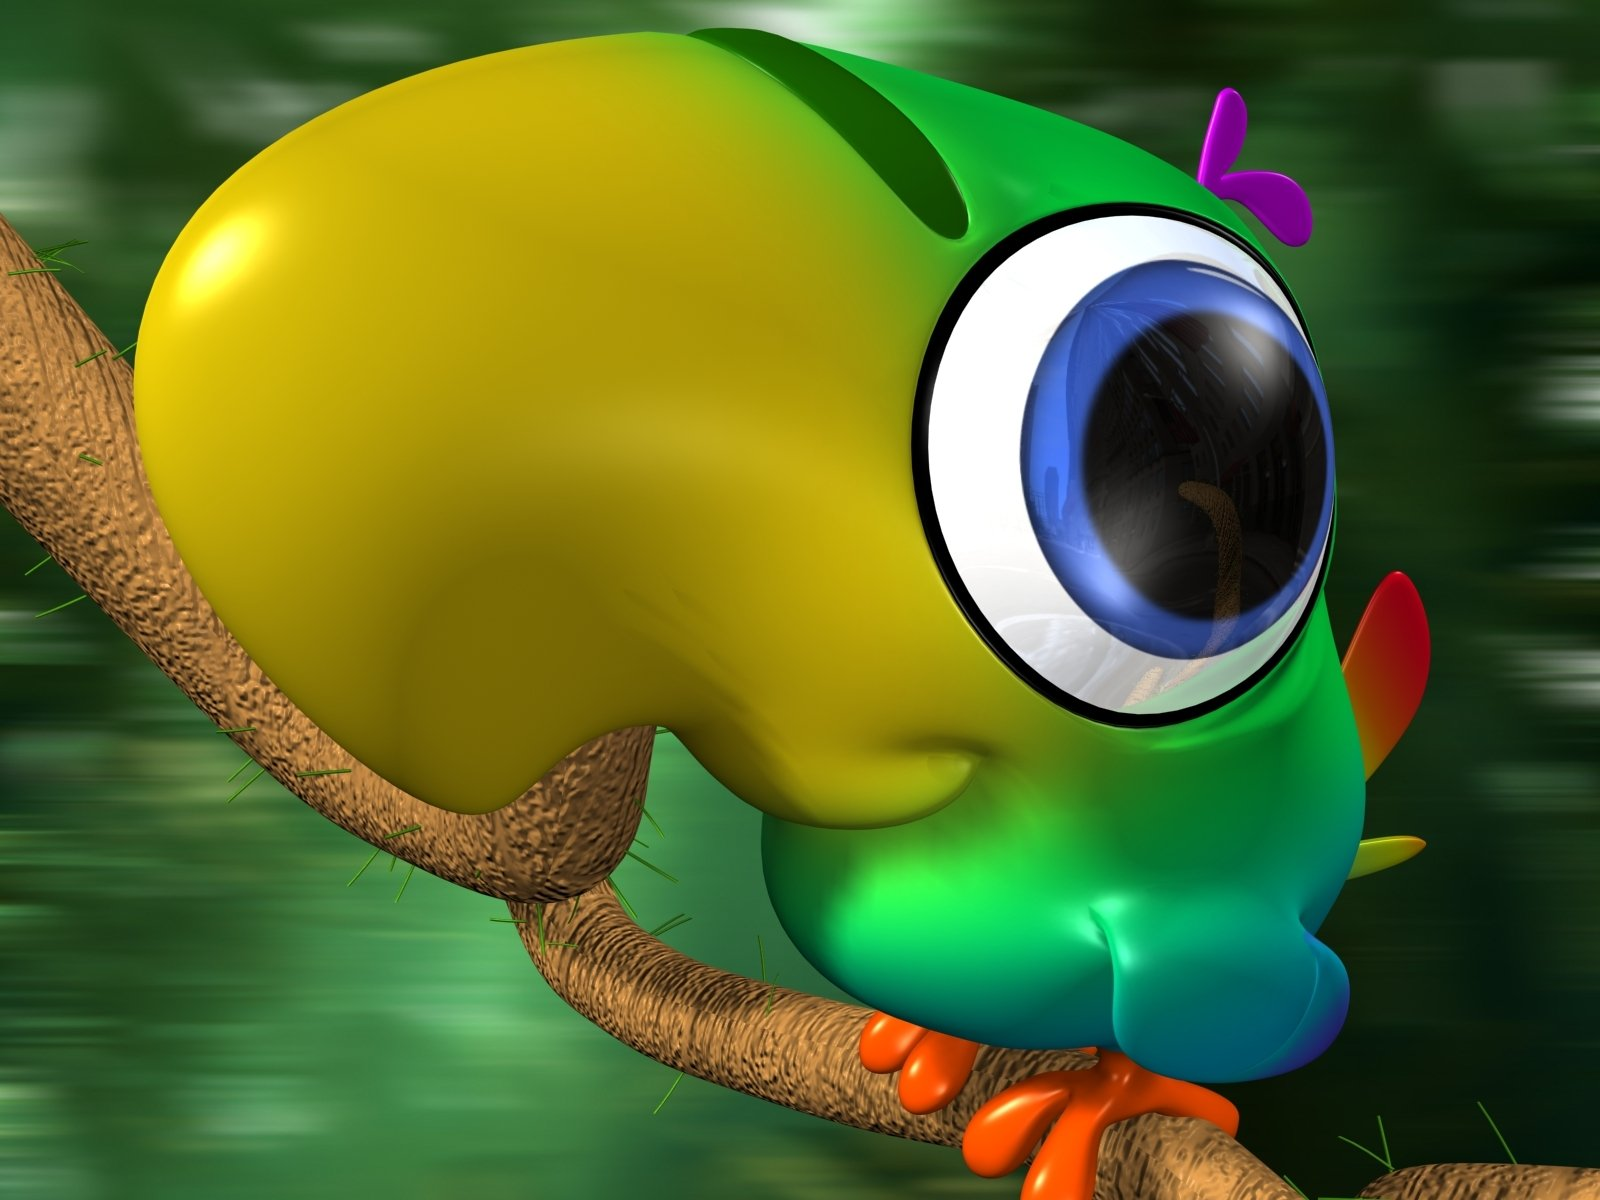 Cartoon hd wallpaper for iphone, for android. cartoon Bird 3D Wallpaper and Background Image   1600x1200